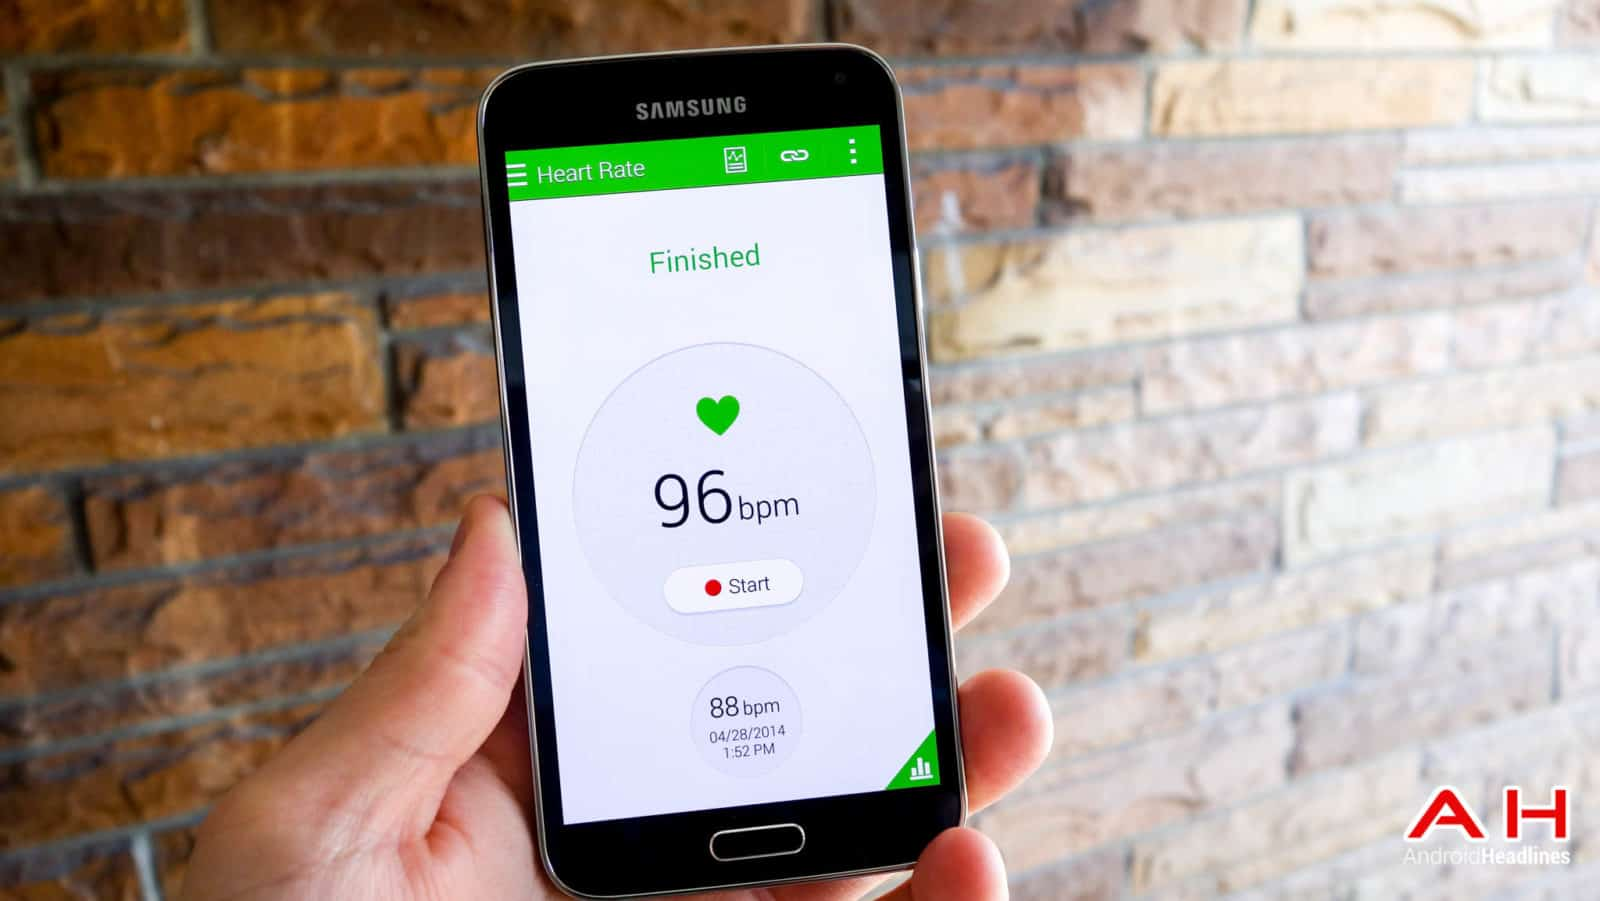 Samsung-Galaxy-S5-S-Health-Heart-Rate-AH-2